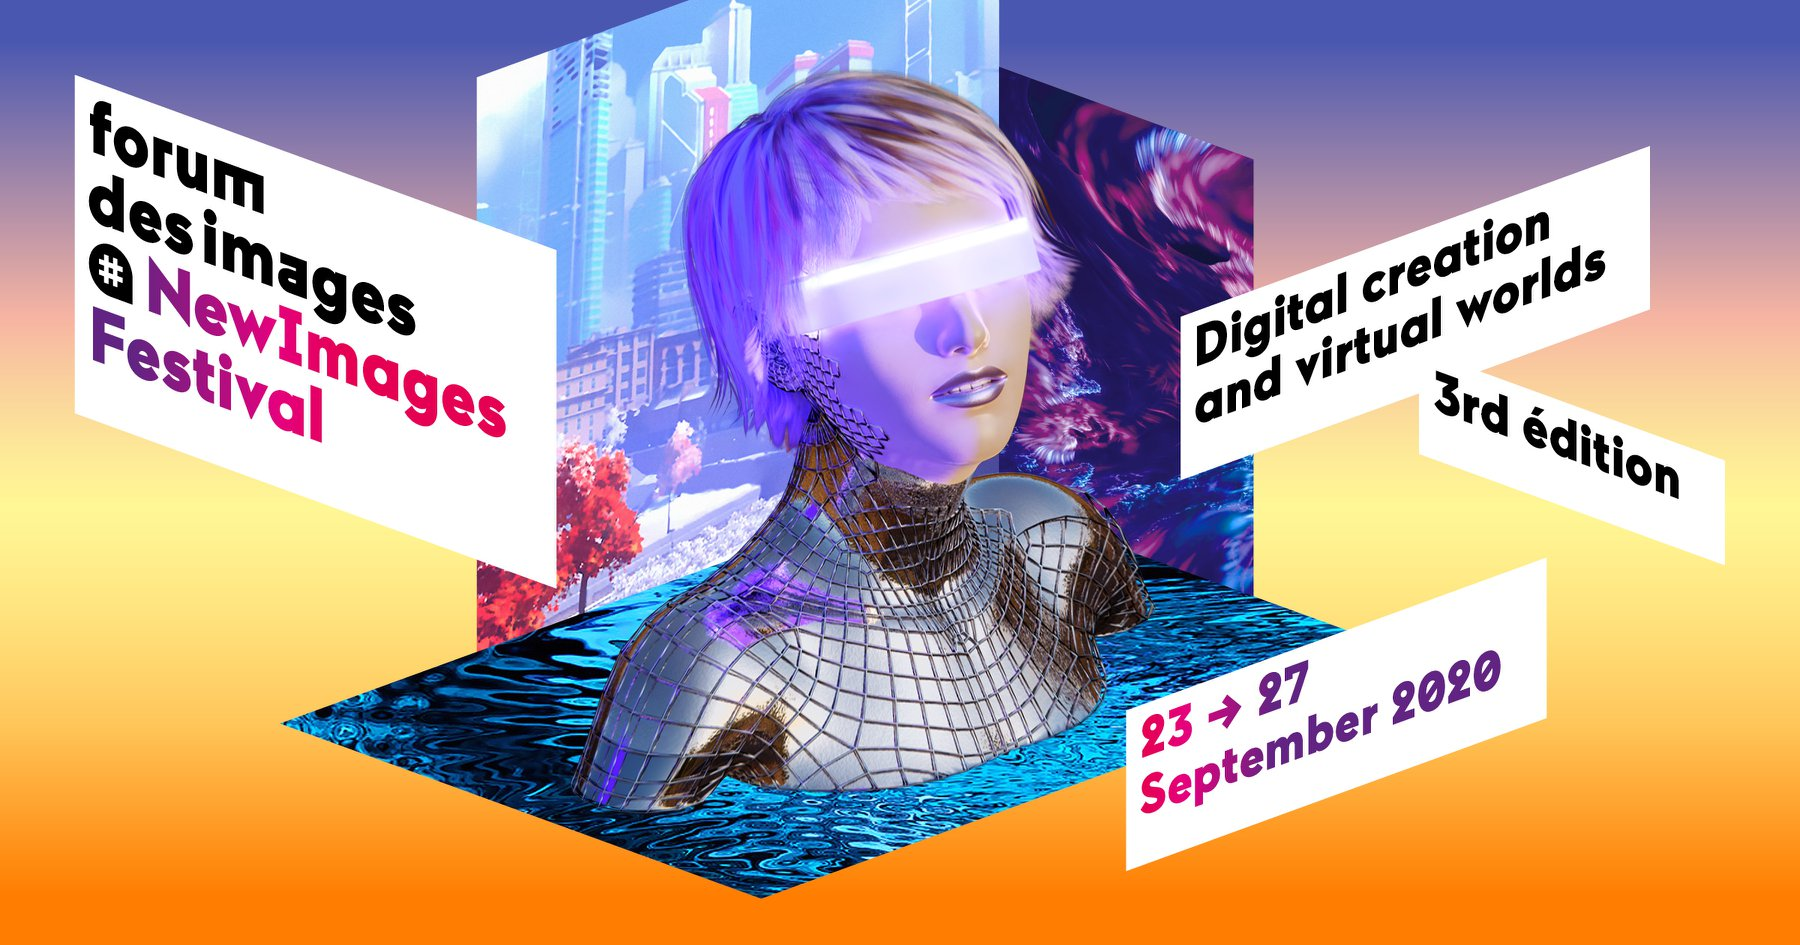 The 3rd edition of the NewImages Festival (23-27 September)